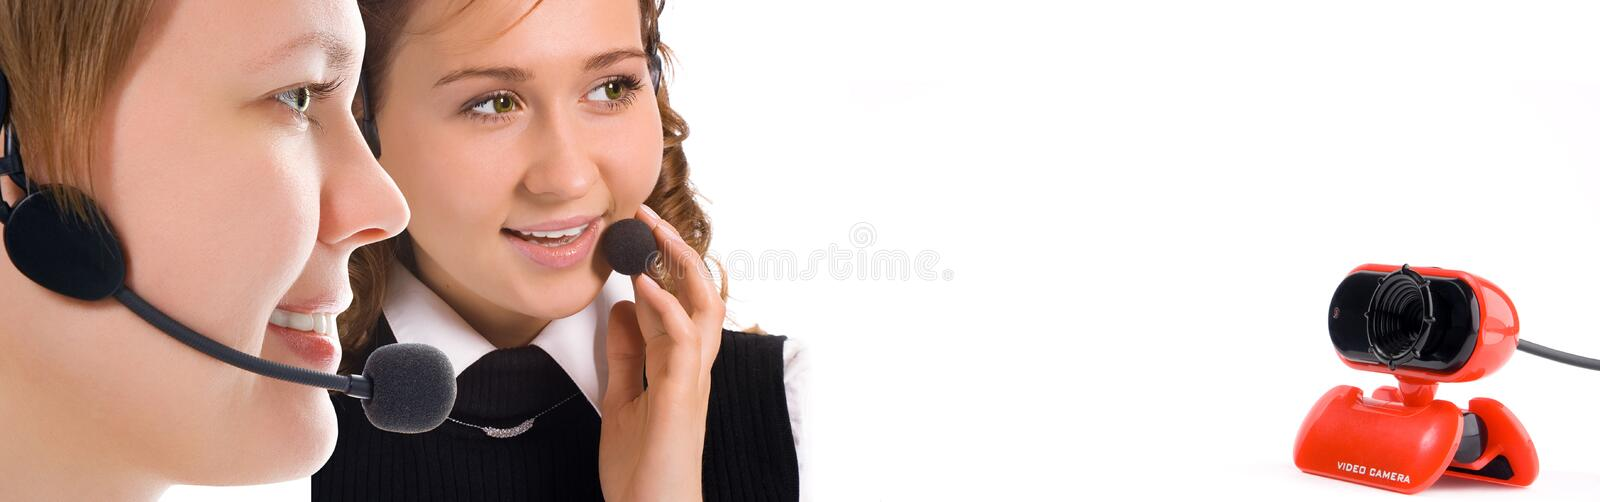 Women operators team stock photos